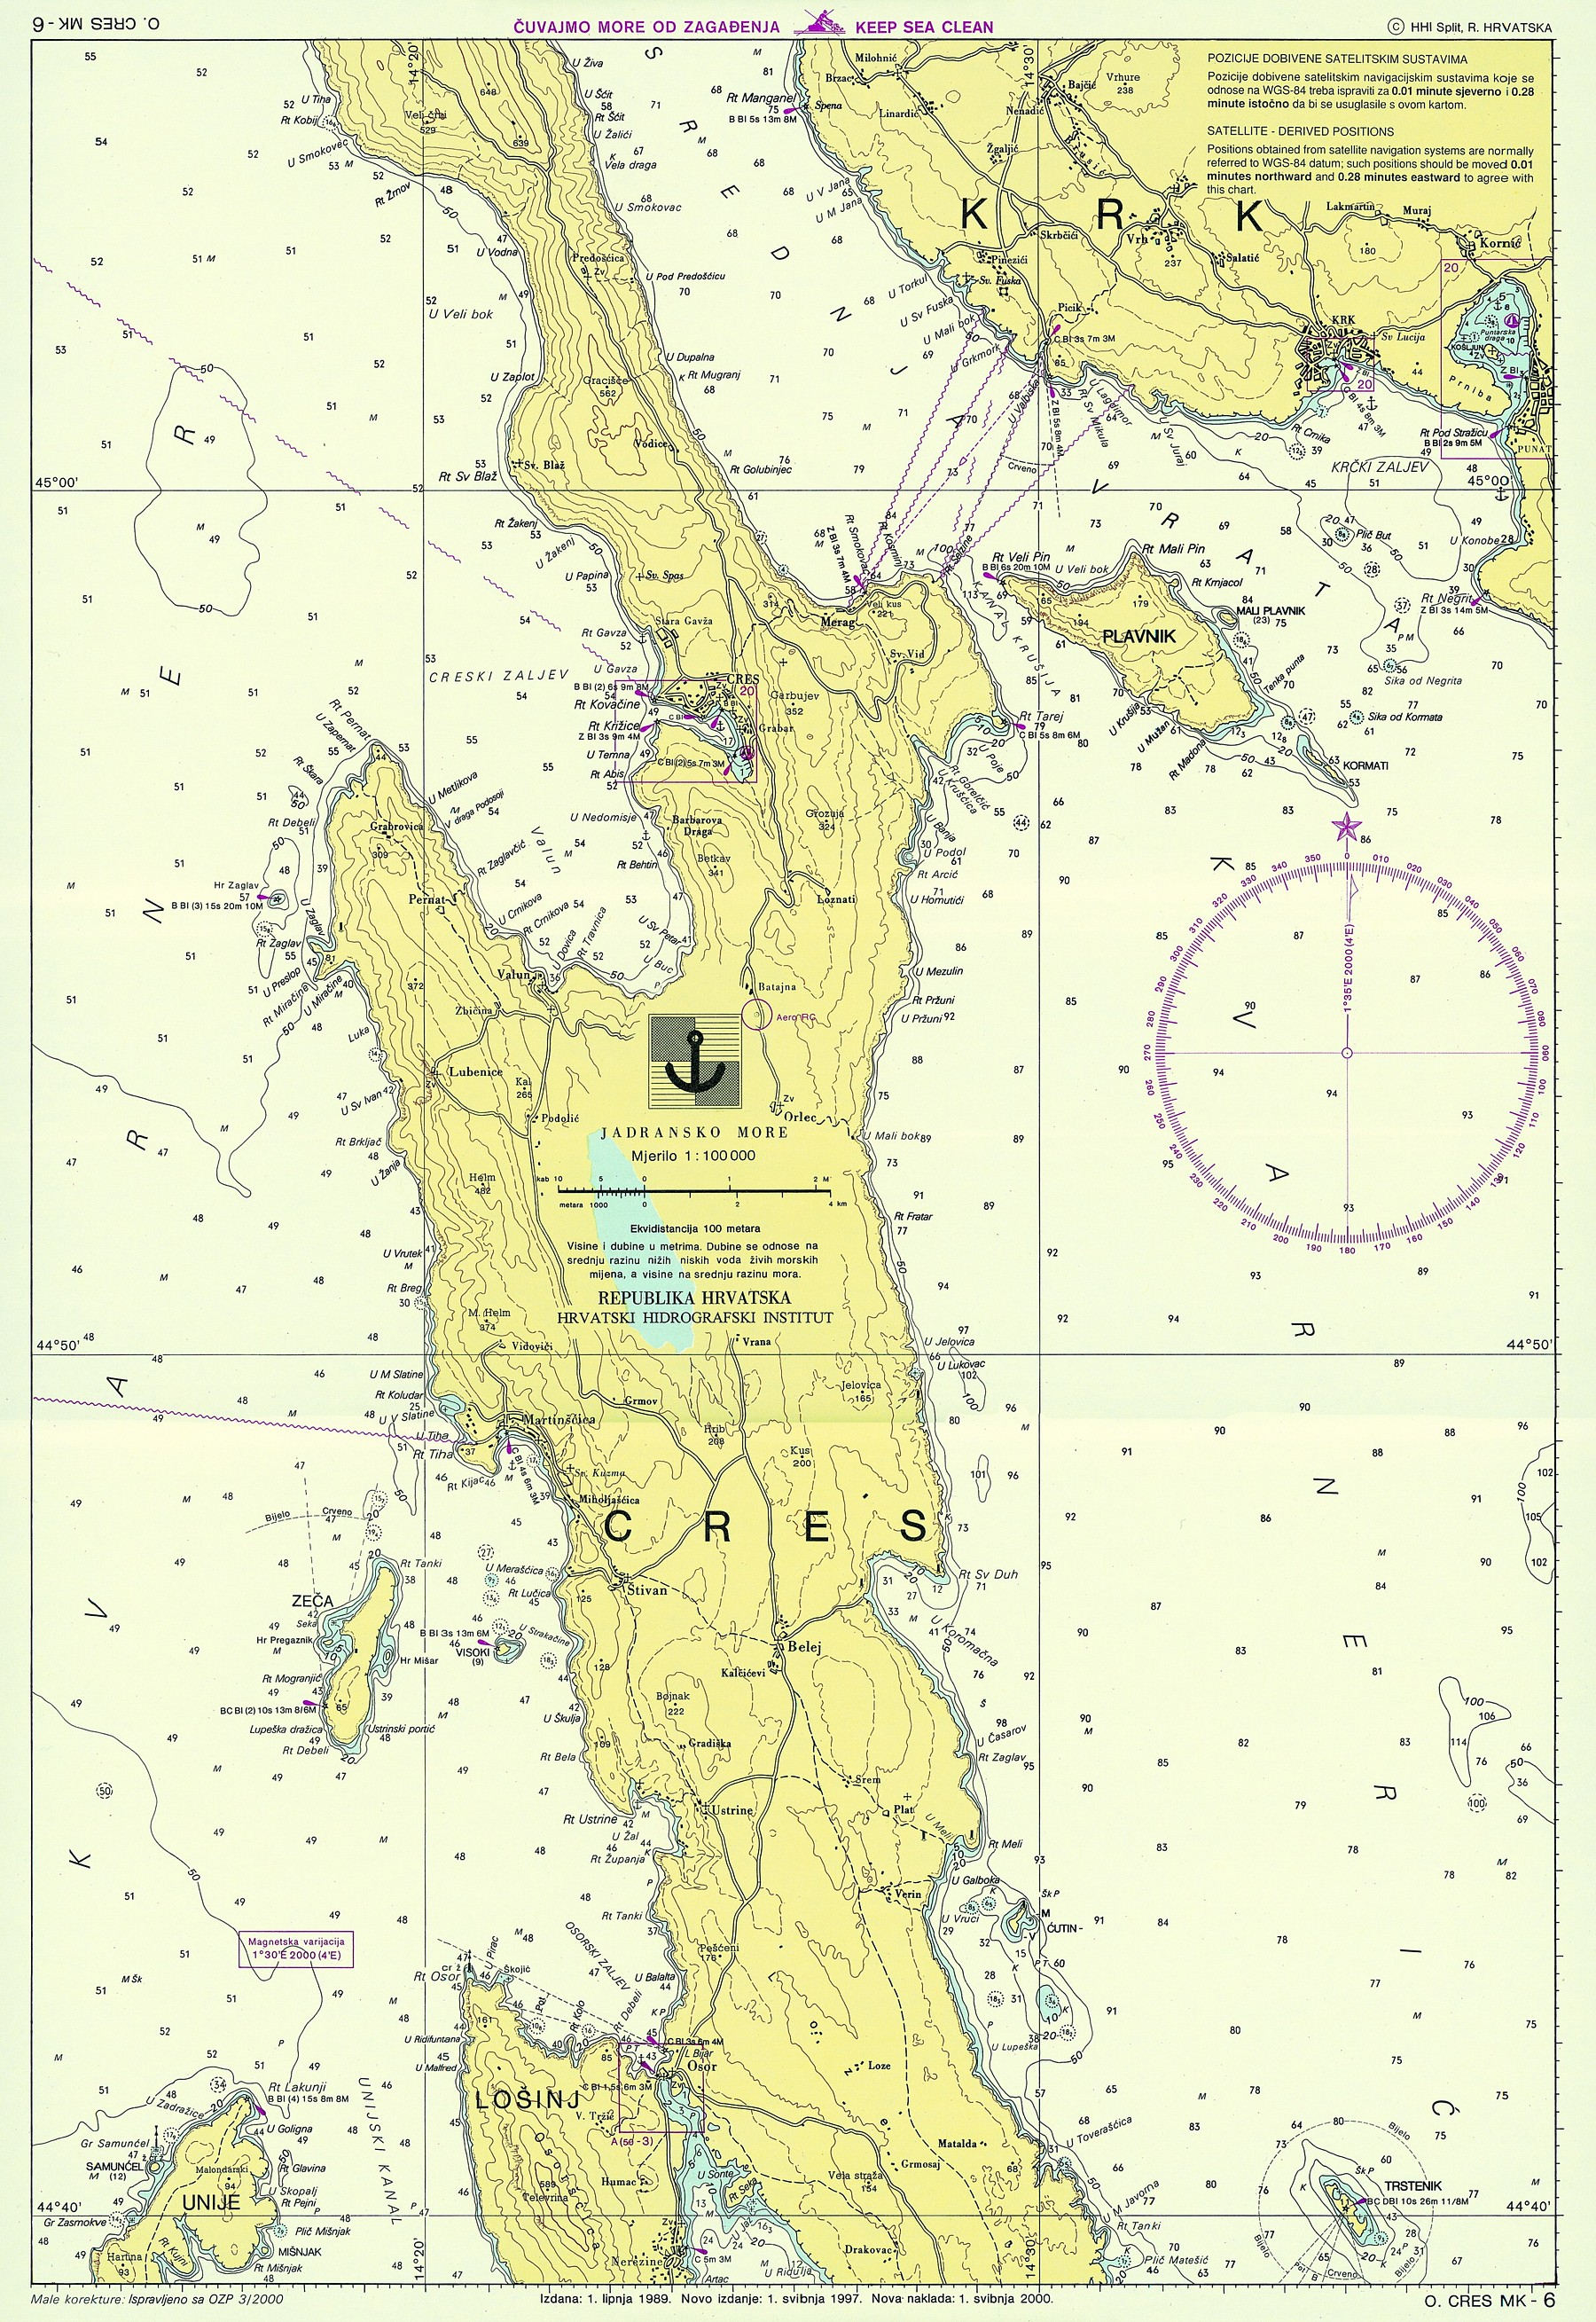 Croatian nautical maps - Vakance charter